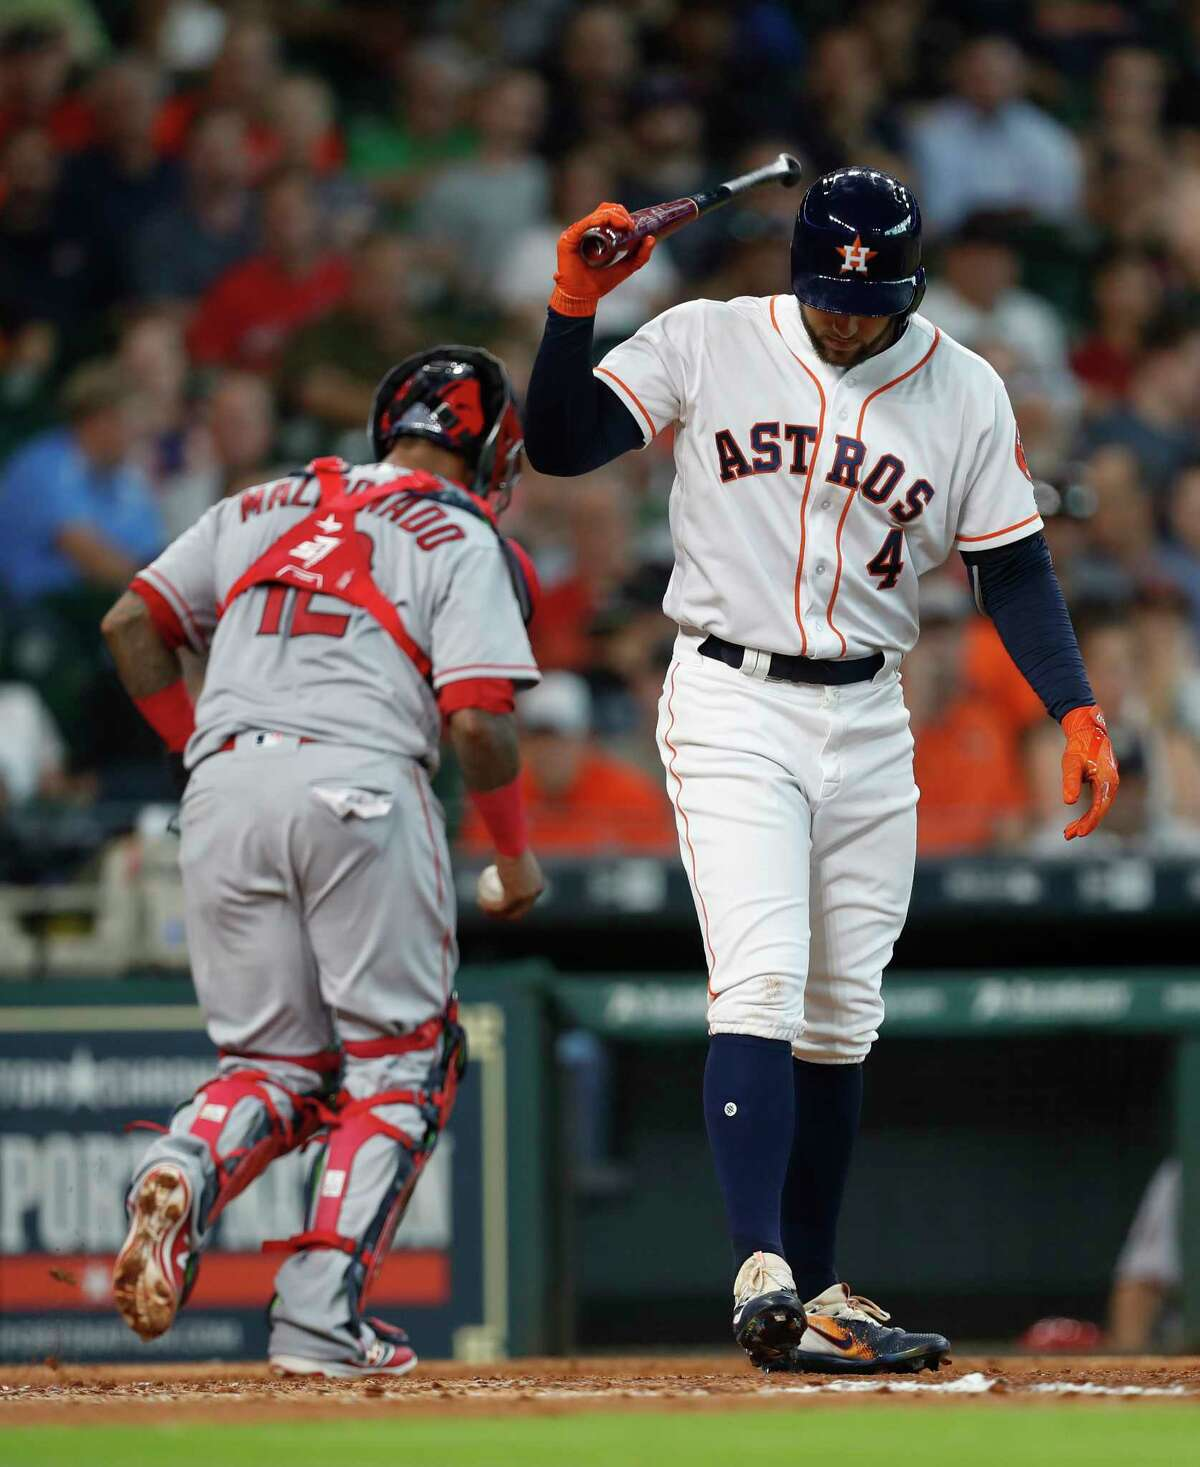 Astros George Springer injured his hamstring Saturday night against Tampa Bay, but he may only miss one game. He is not in the lineup for Sunday's series finale.